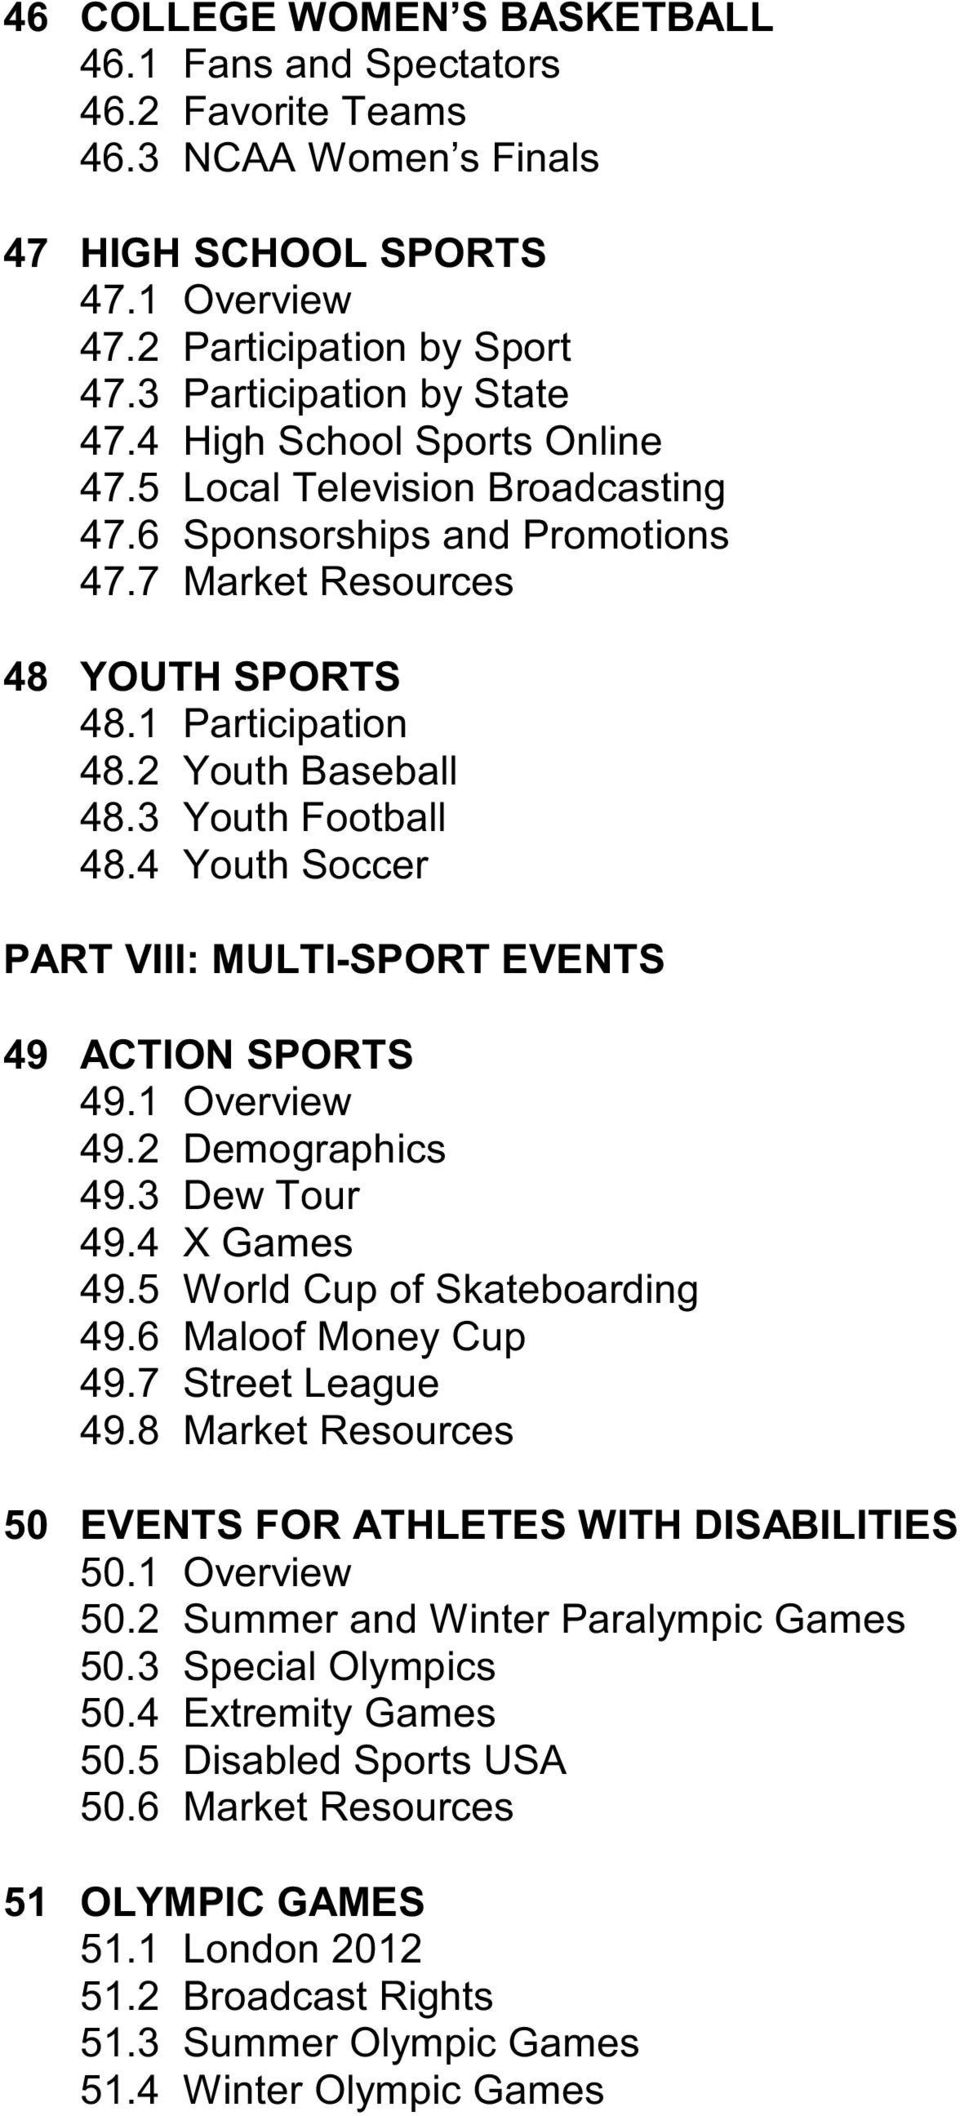 4 Youth Soccer PART VIII: MULTI-SPORT EVENTS 49 ACTION SPORTS 49.1 Overview 49.2 Demographics 49.3 Dew Tour 49.4 X Games 49.5 World Cup of Skateboarding 49.6 Maloof Money Cup 49.7 Street League 49.